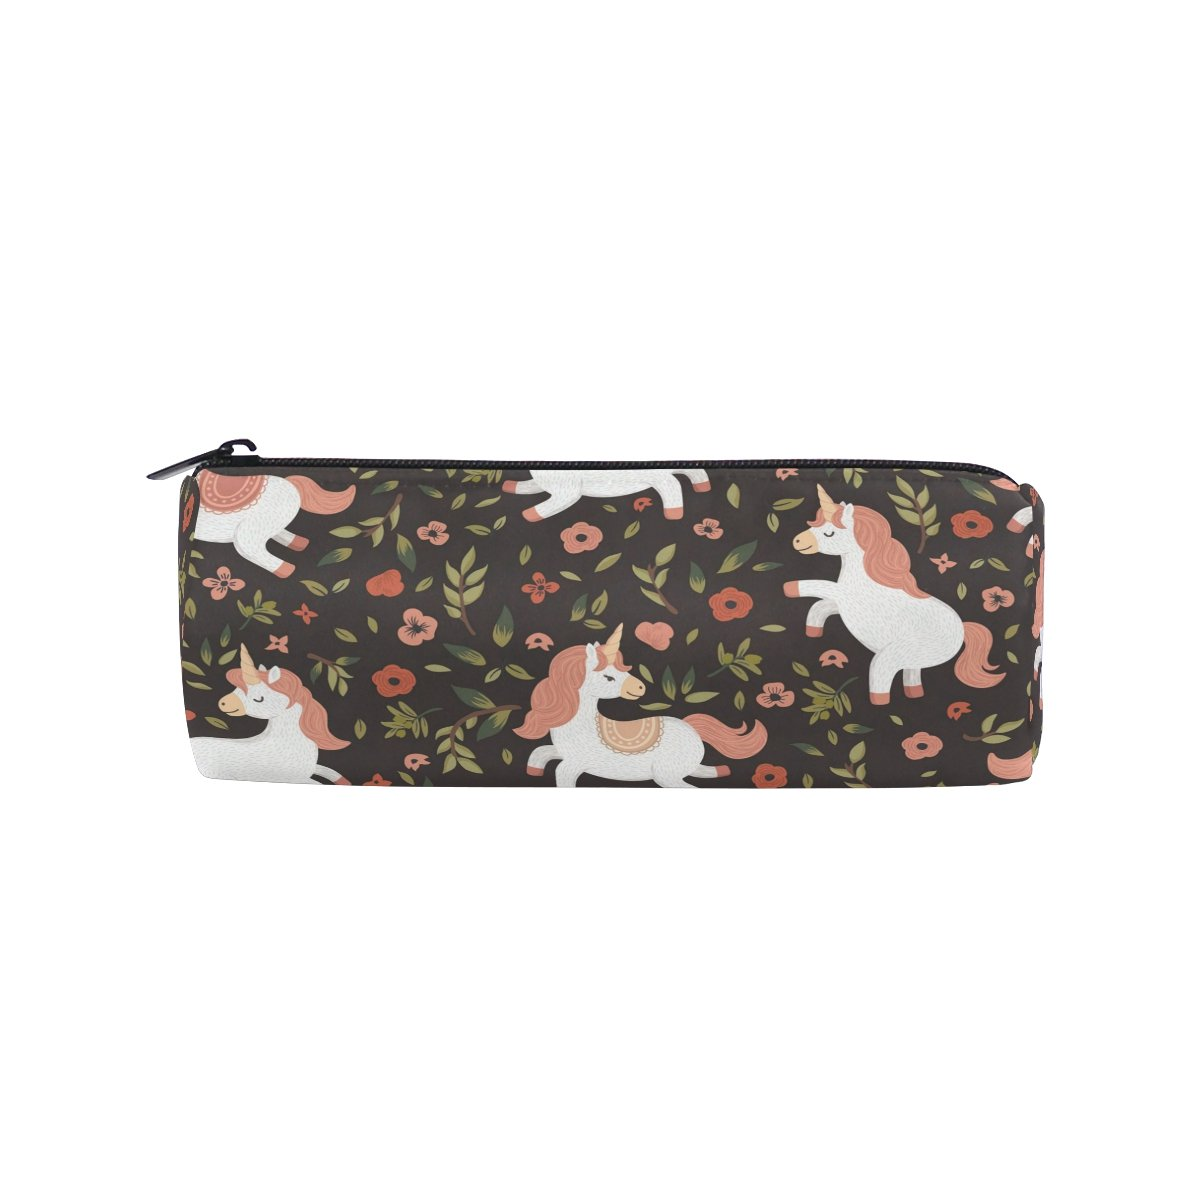 ALAZA Unicorn Walking Forest Barrel Cotton Pencil Pen Bag Pouch Case Holder School Supplies for Student Teens